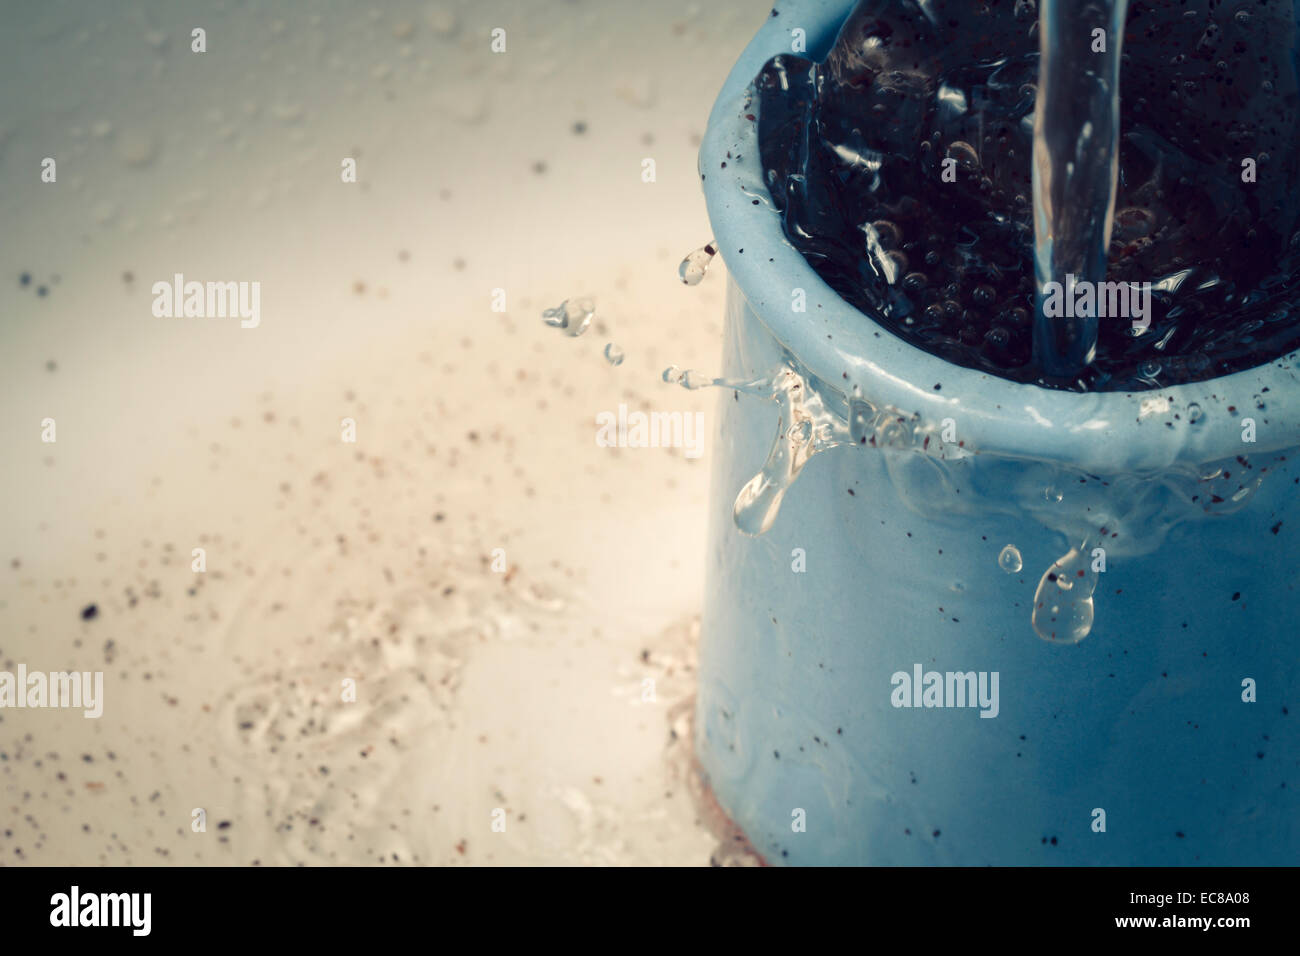 cup container pot with coffe grounds and water movement - Stock Image